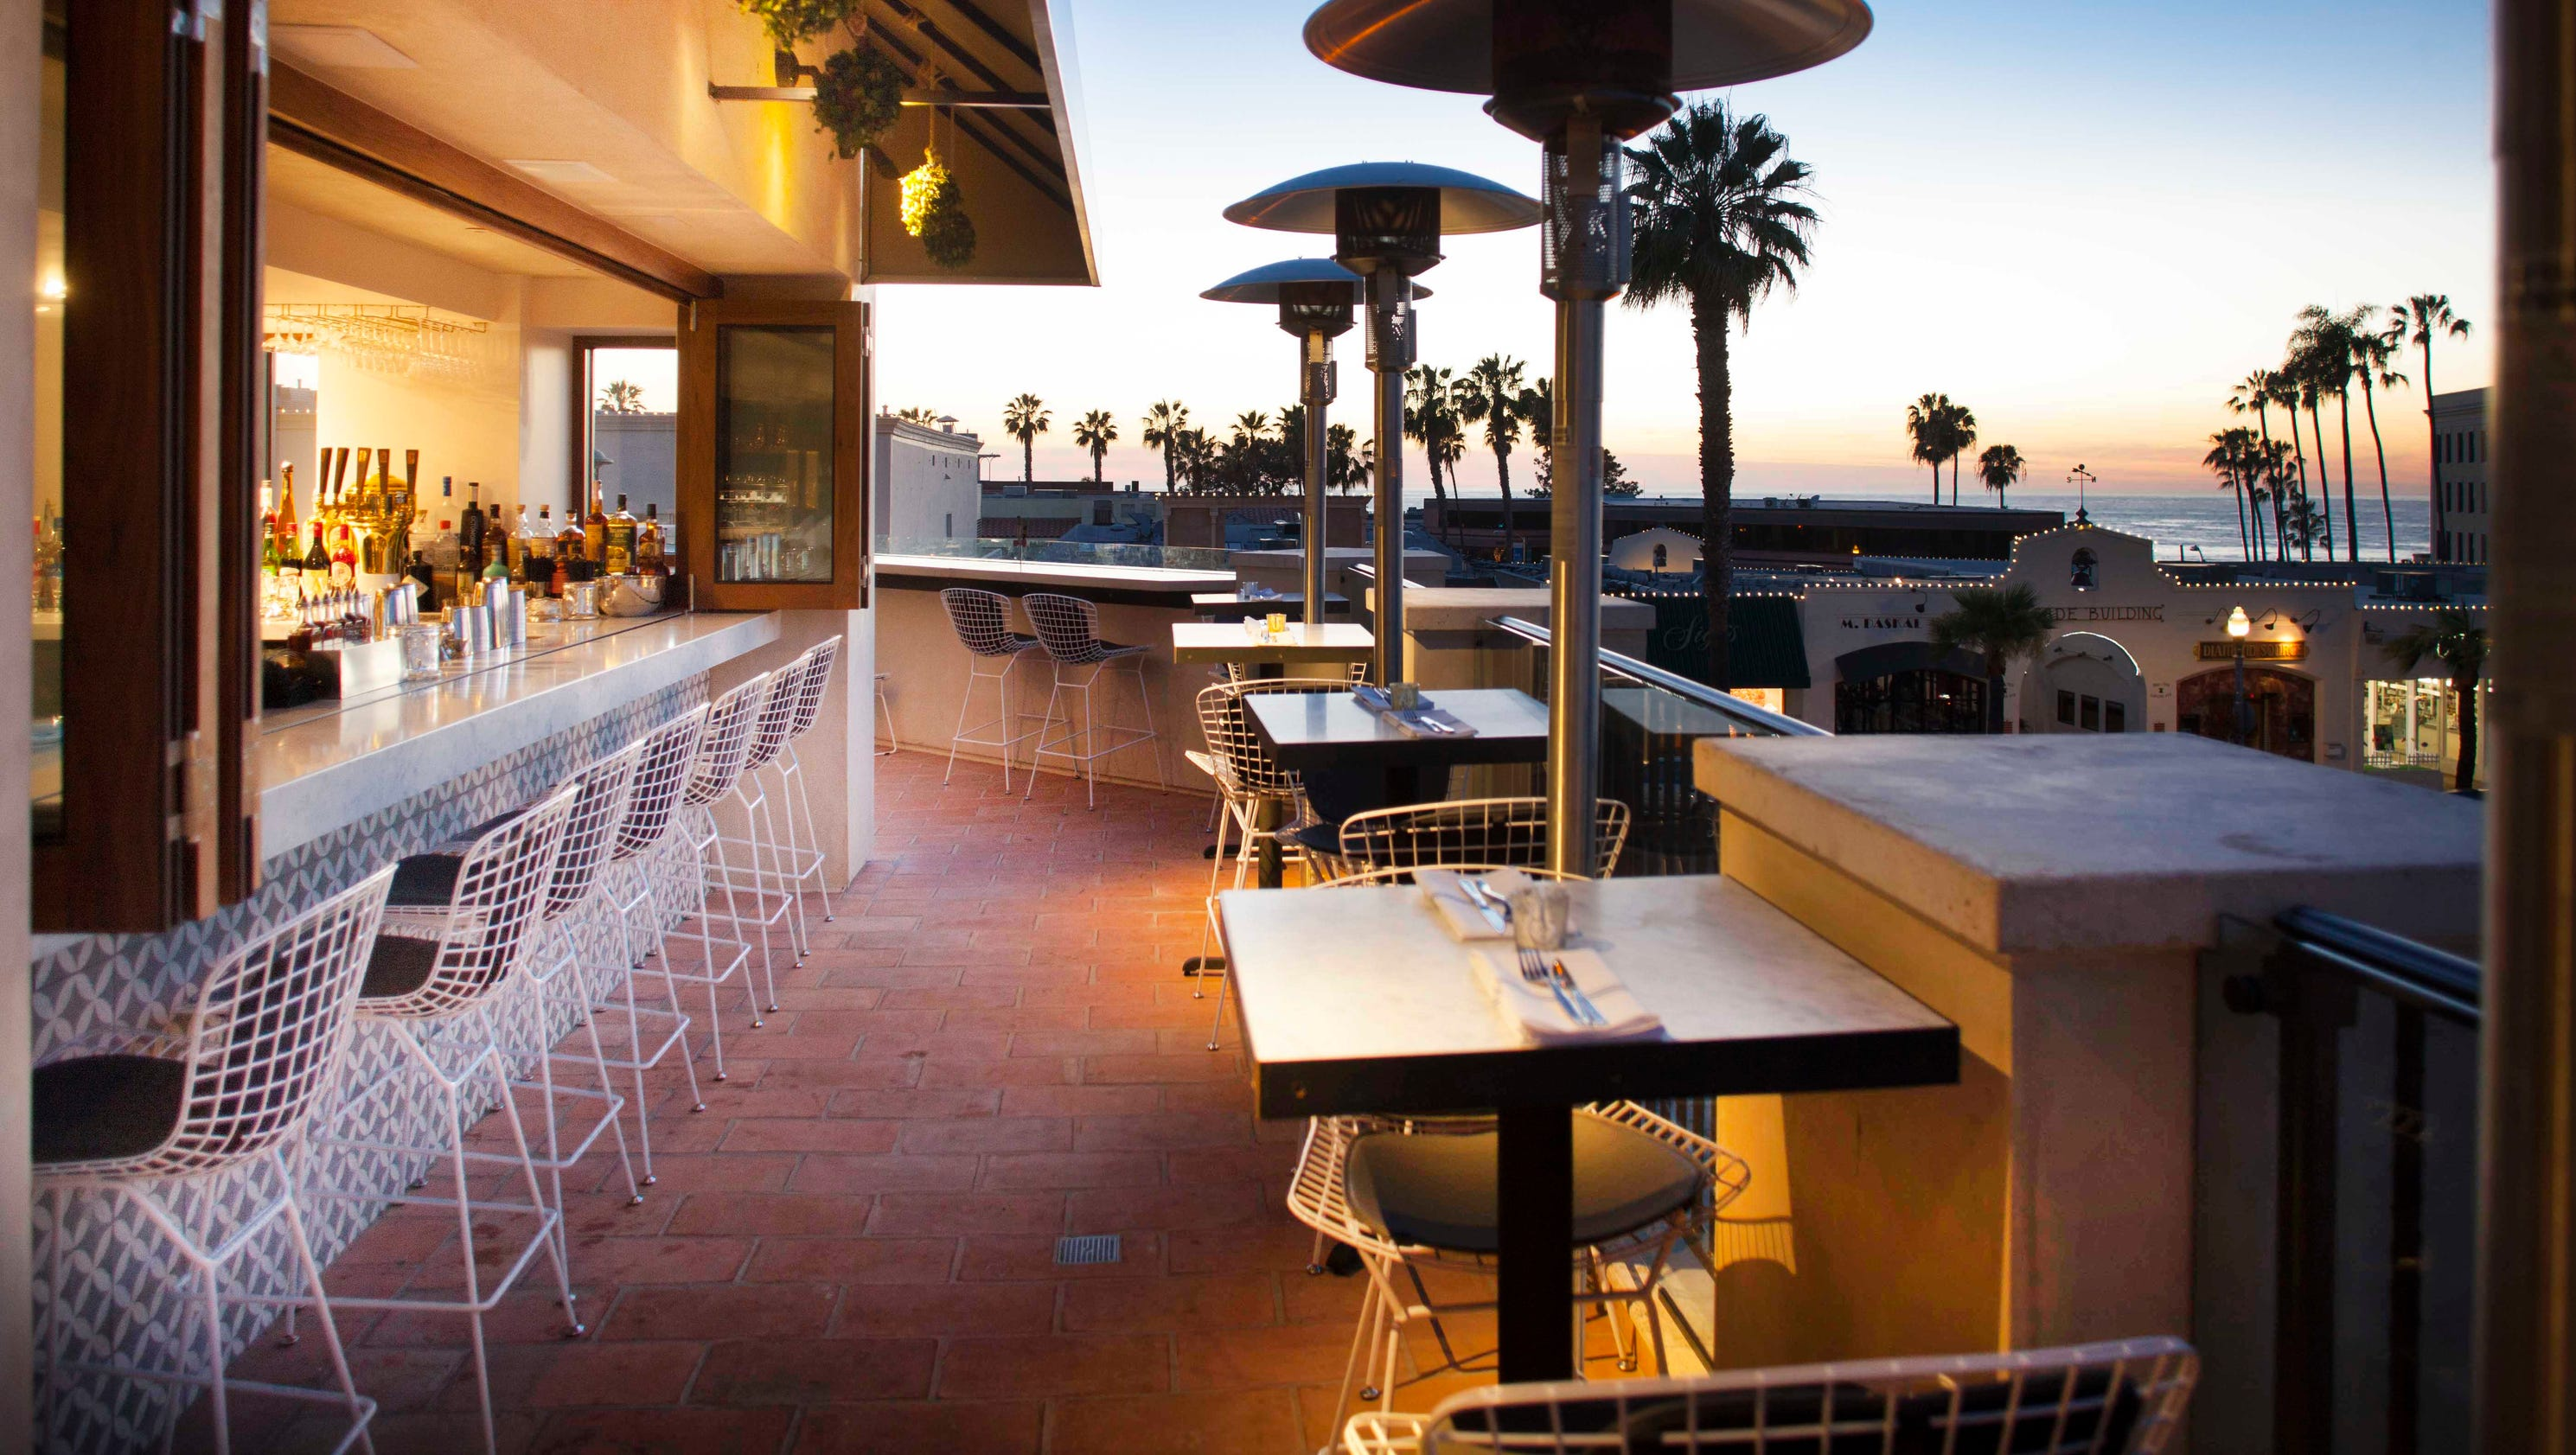 America 39 s rooftop restaurants and bars - Credot ilot centraal ...